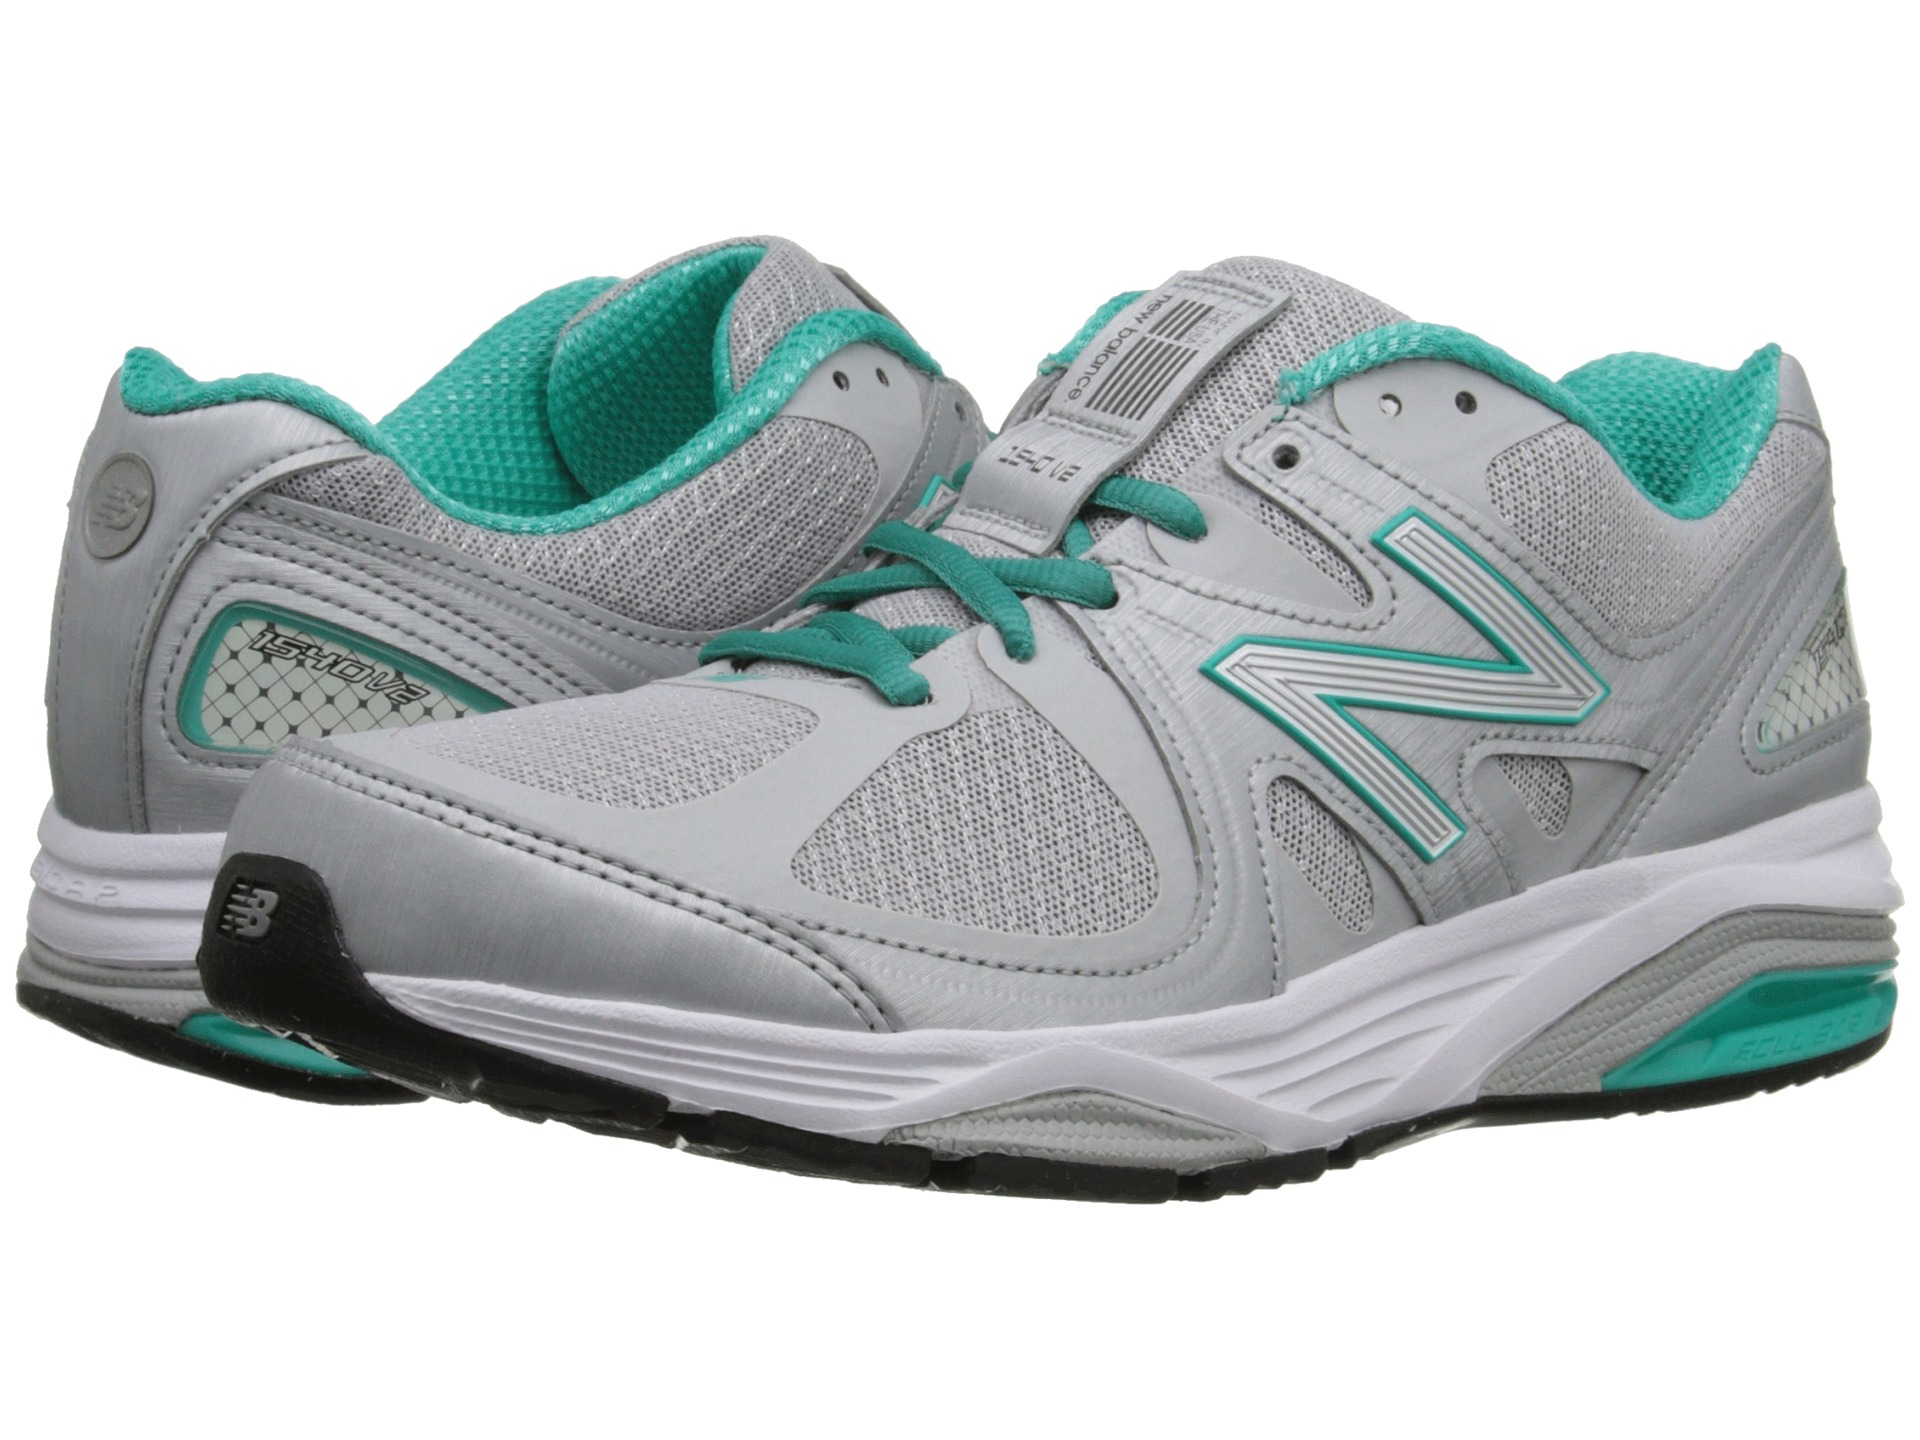 Womens New Balance High Arch Running Shoes